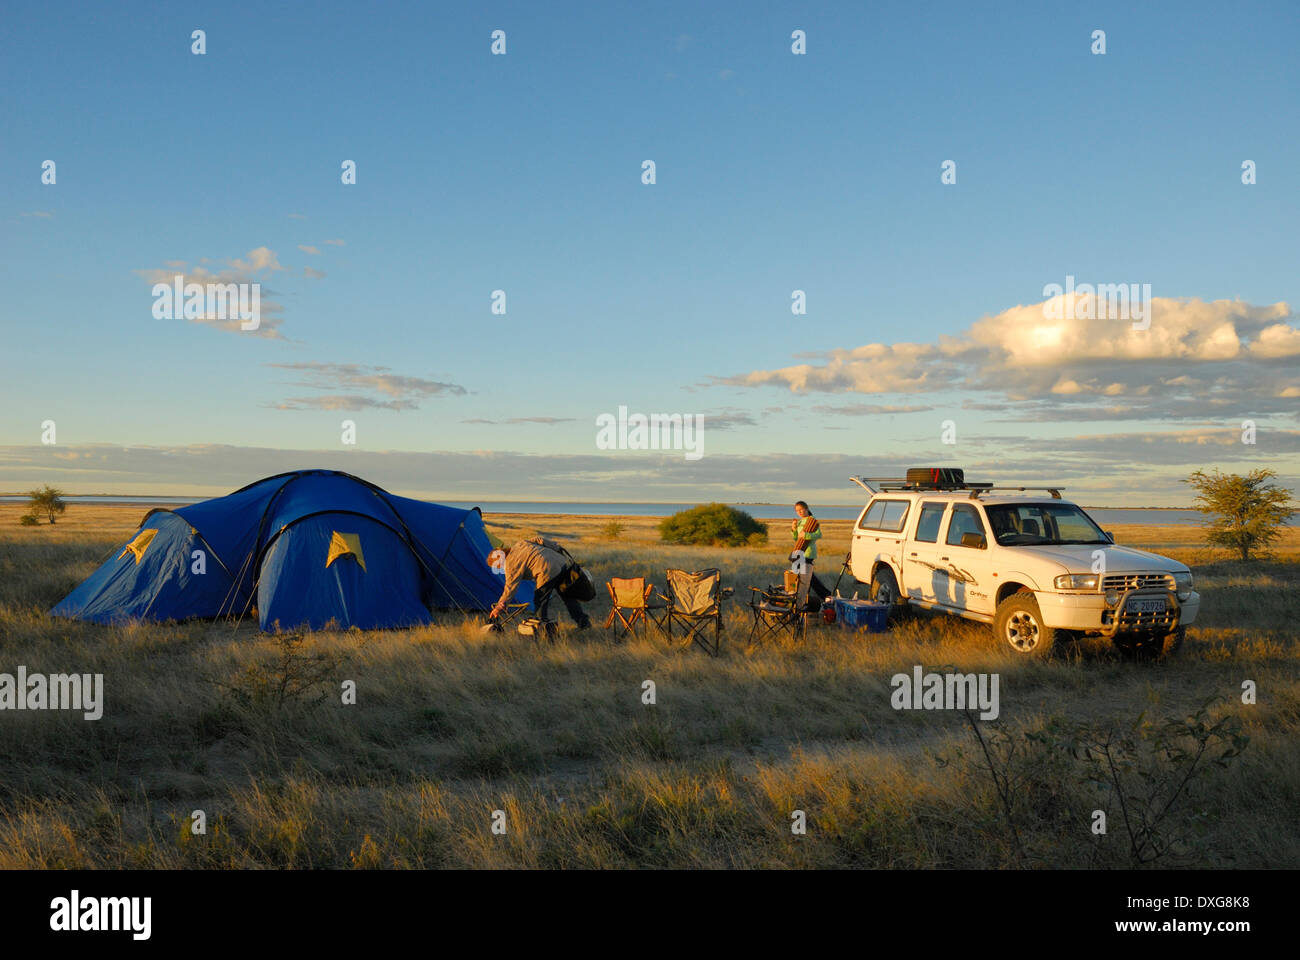 Camping at the edge of the flooded Sowa Pan in the Makgadikgadi Pans, Botswana. Stock Photo